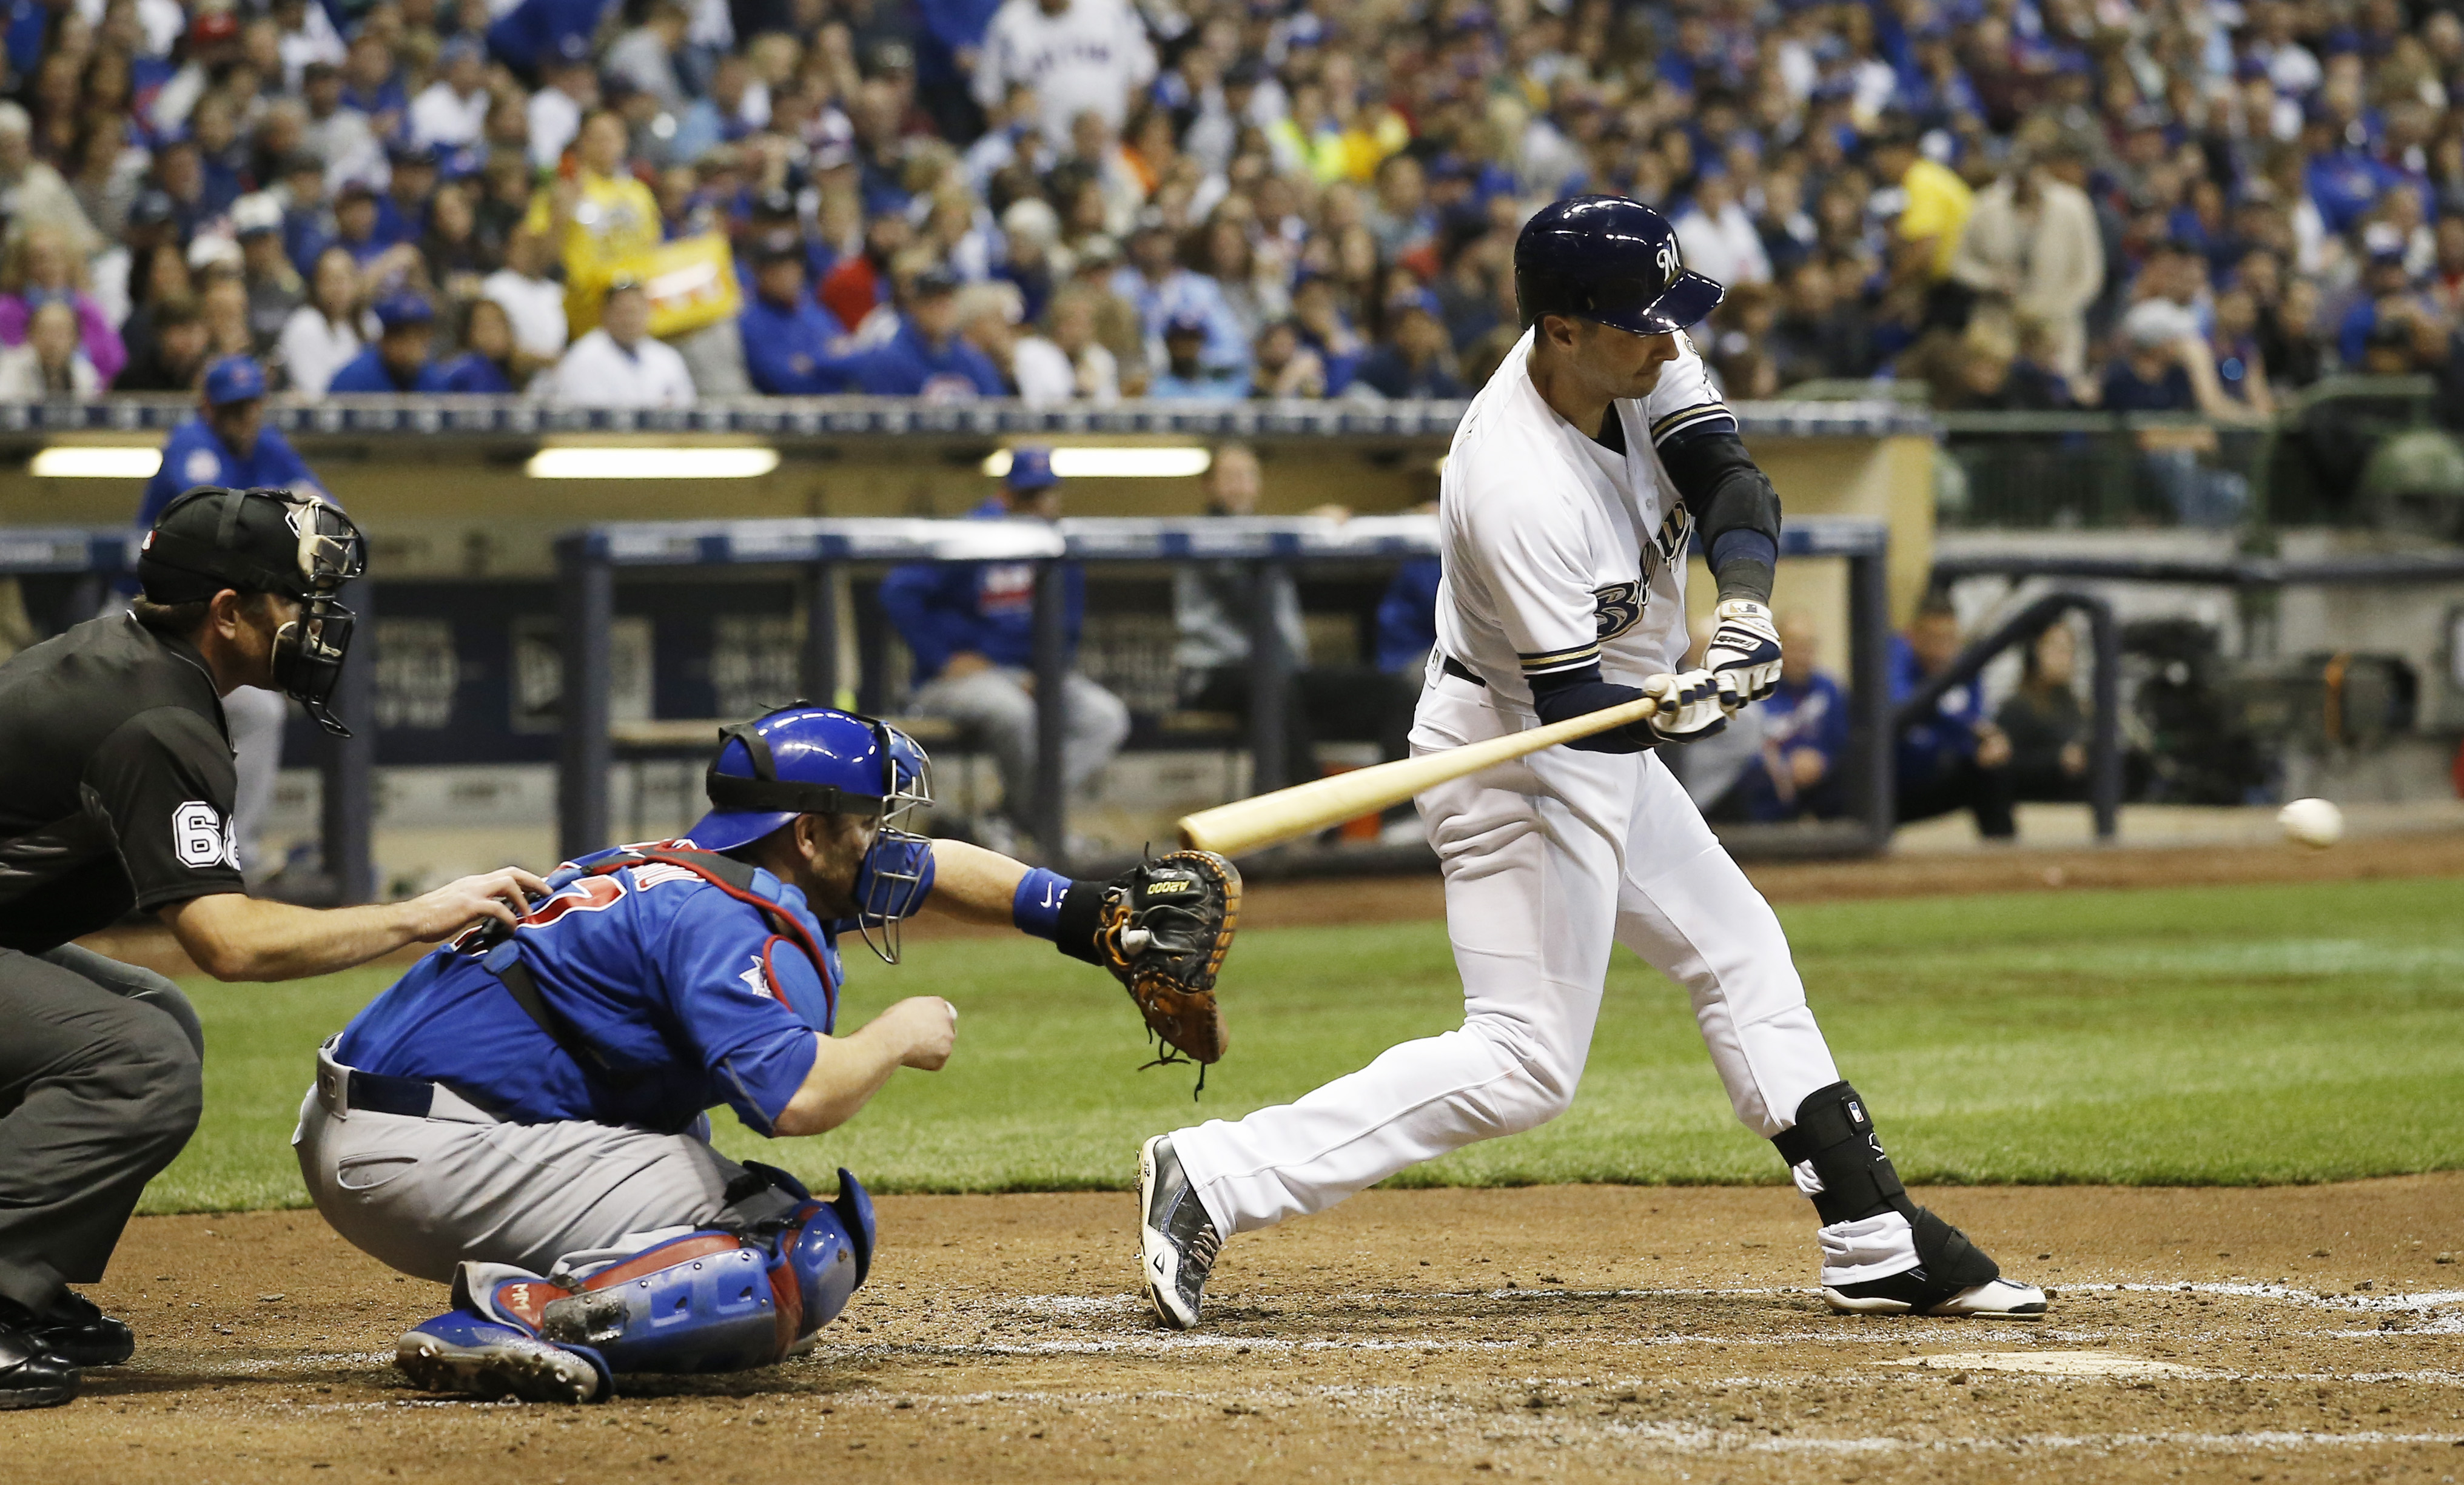 Milwaukee Brewers' Ryan Braun hits an RBI single during the sixth inning of a baseball game against the Chicago Cubs Tuesday, May 17, 2016, in Milwaukee. (AP Photo/Morry Gash)